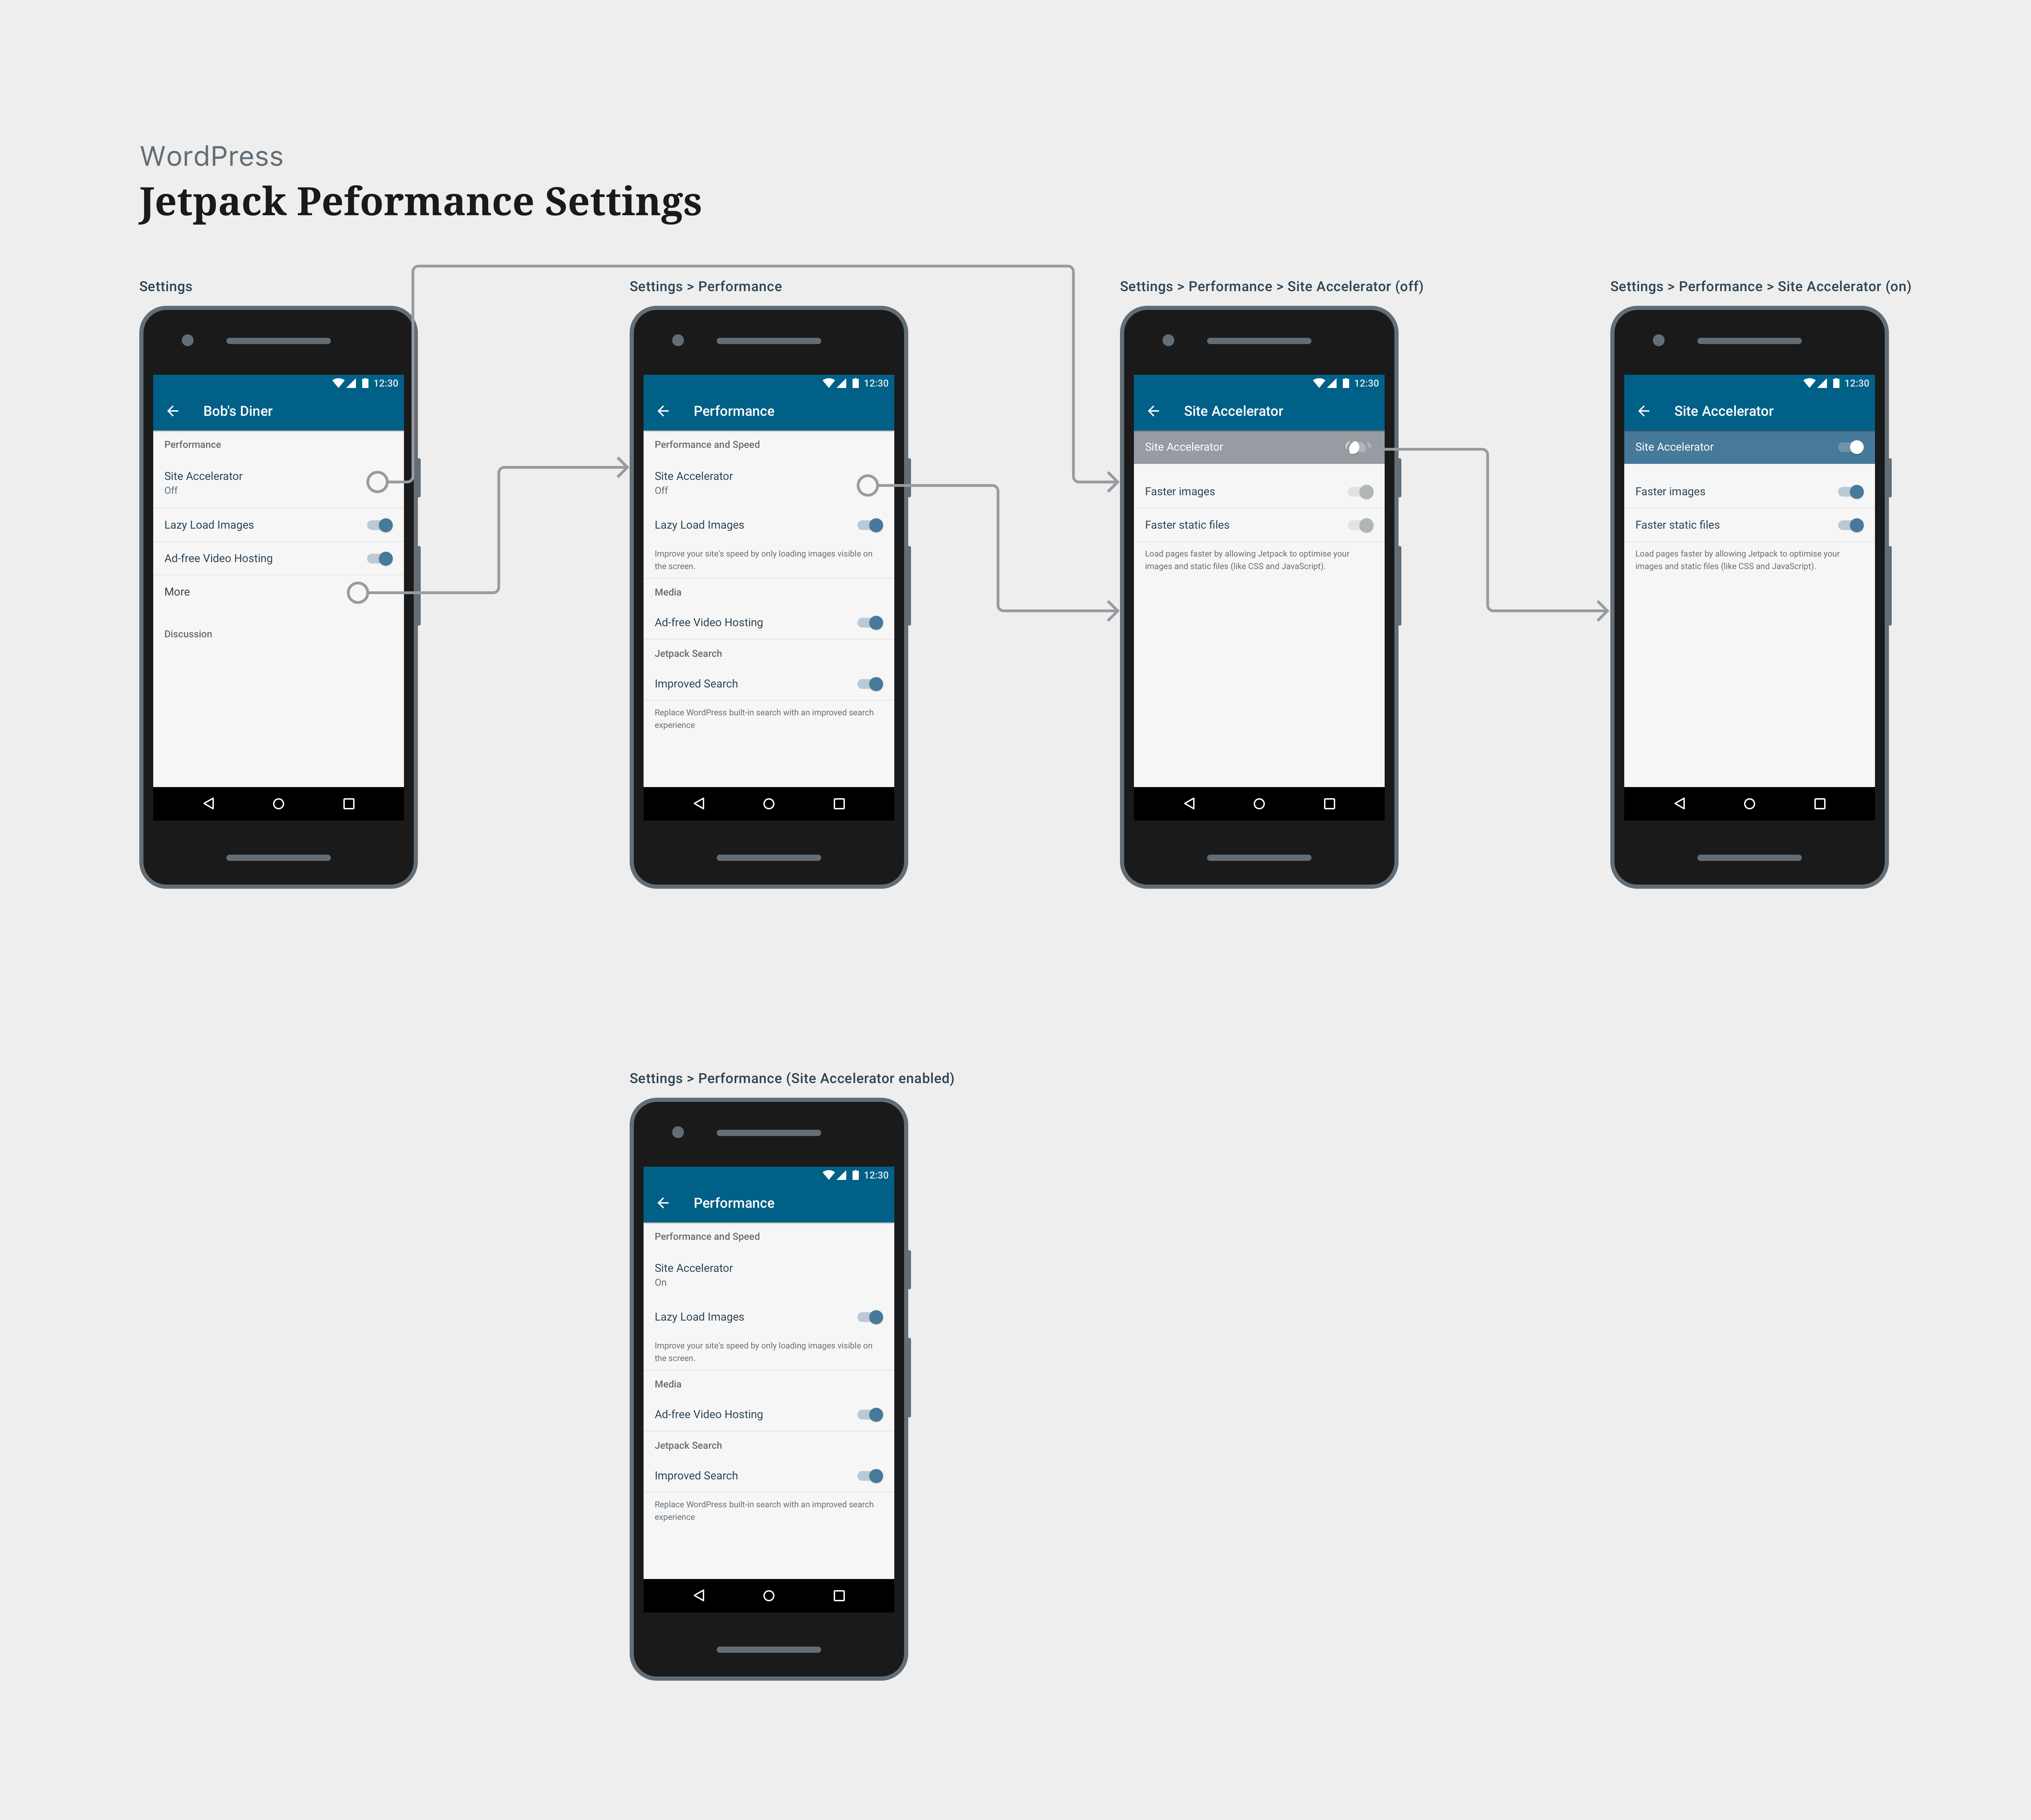 jetpack_peformance_settings_android-1